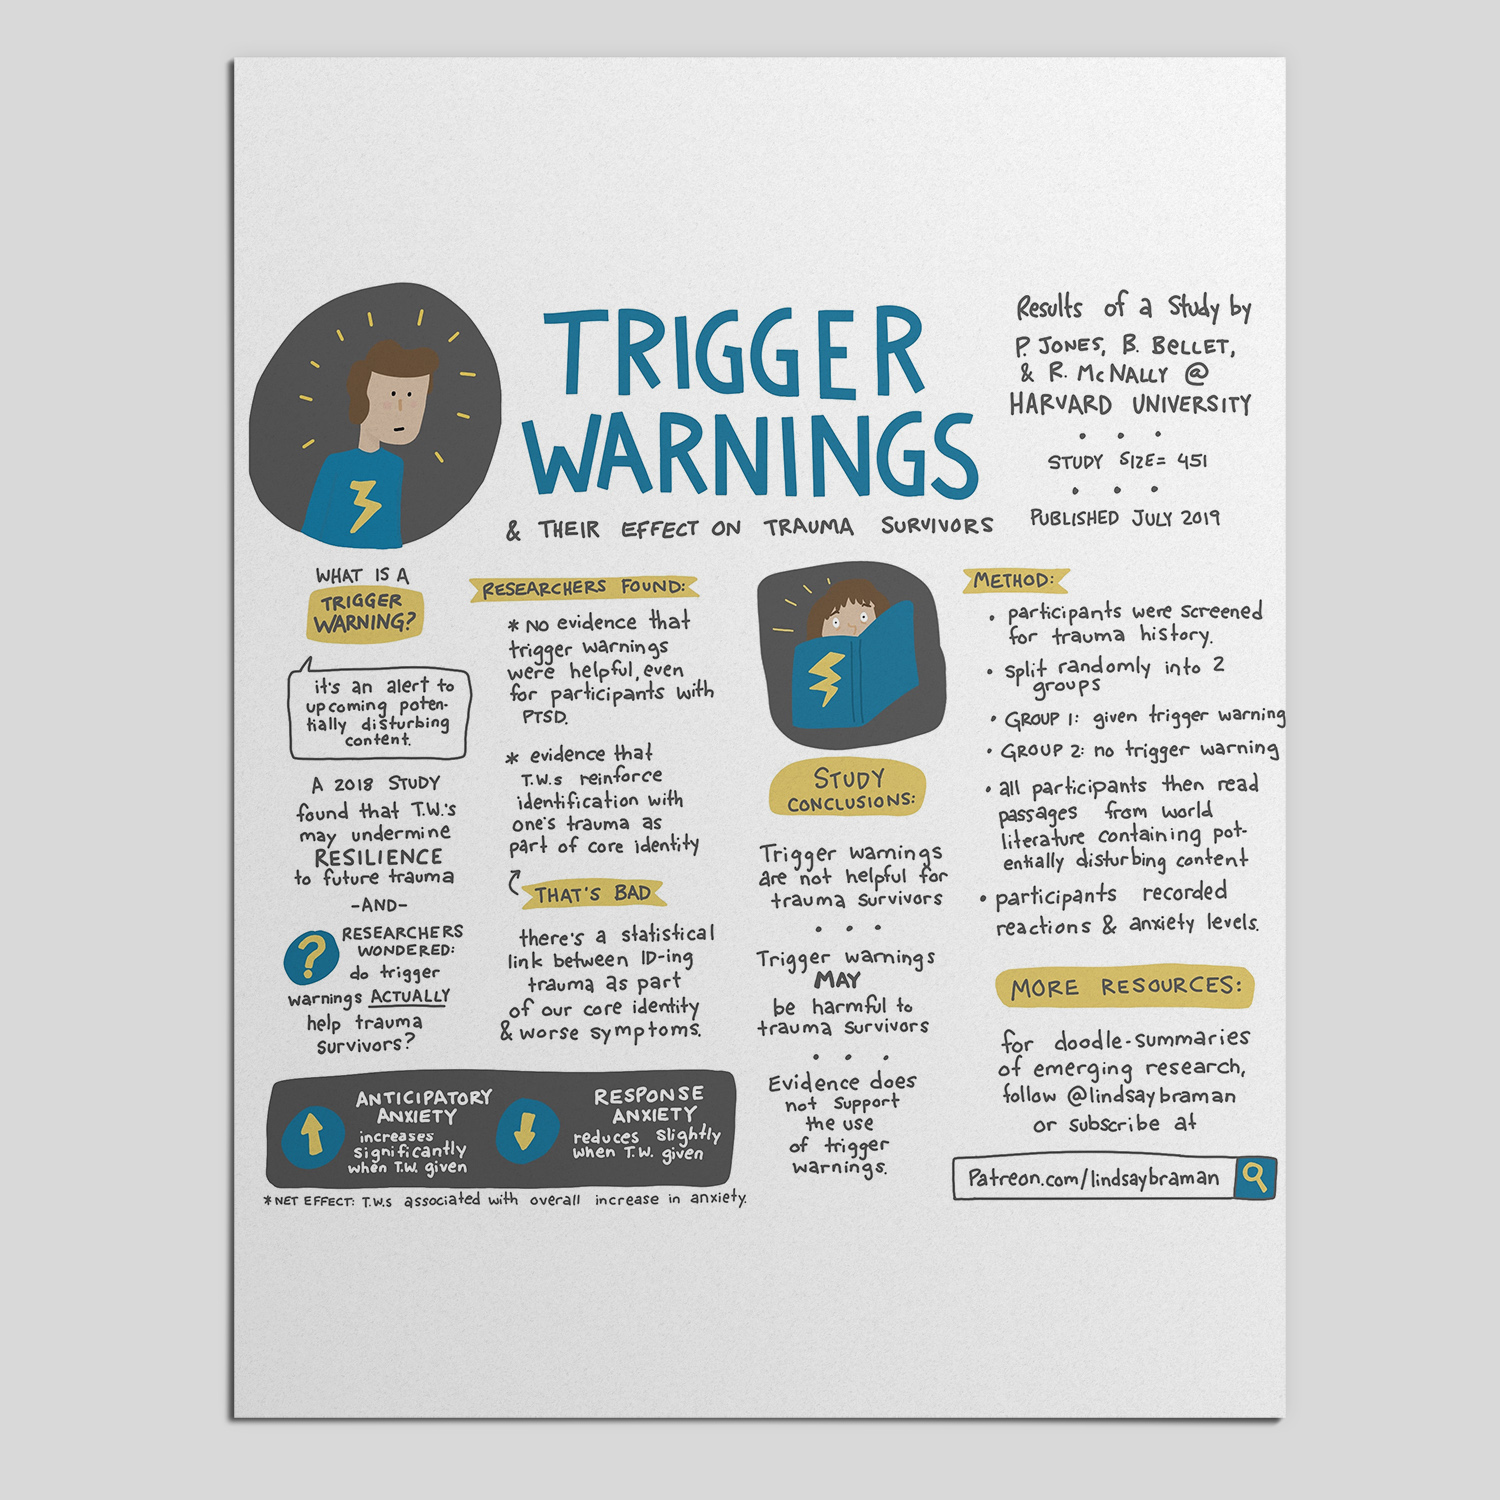 Trigger warnings and their effect on trauma survivors.